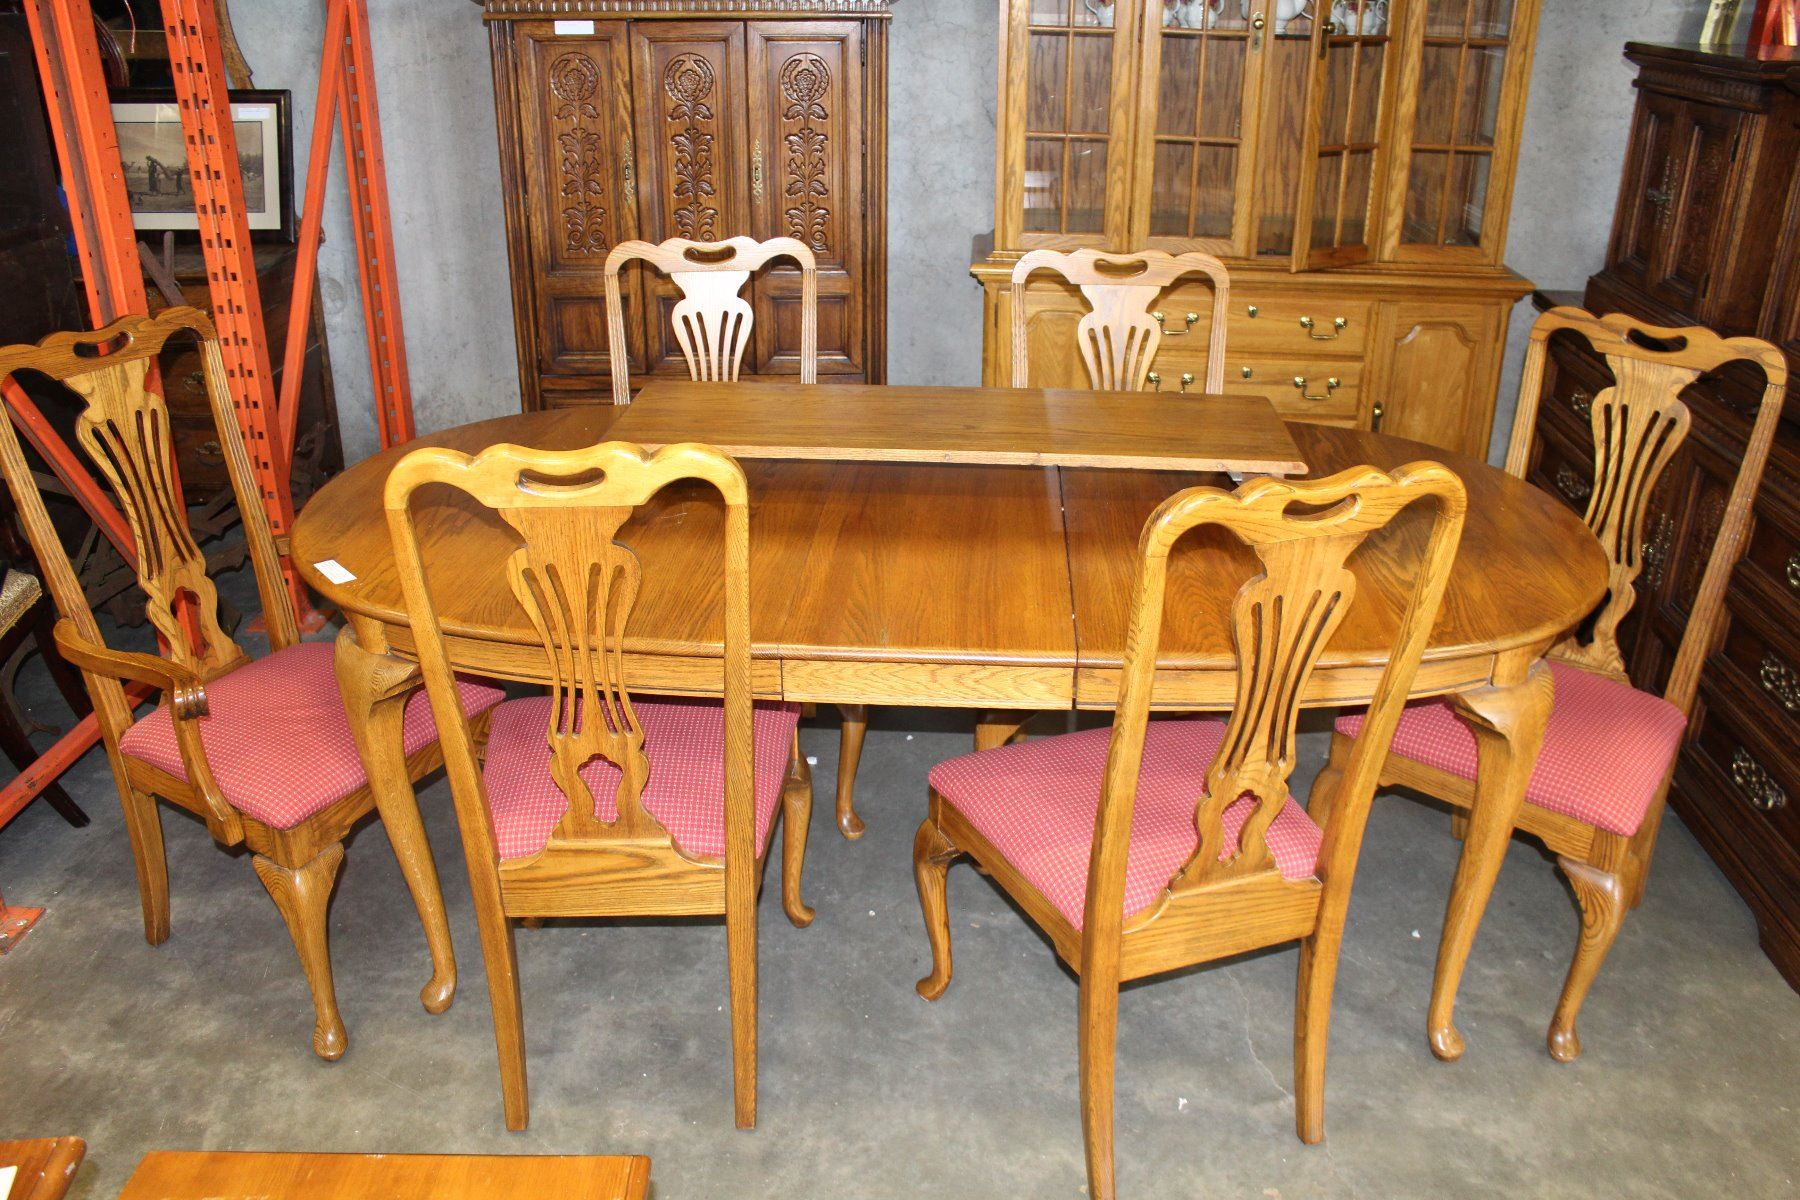 Image 1 JAMESTOWN STERLING SOLID OAK DINING TABLE W 2 LEAFS 6 CHAIRS